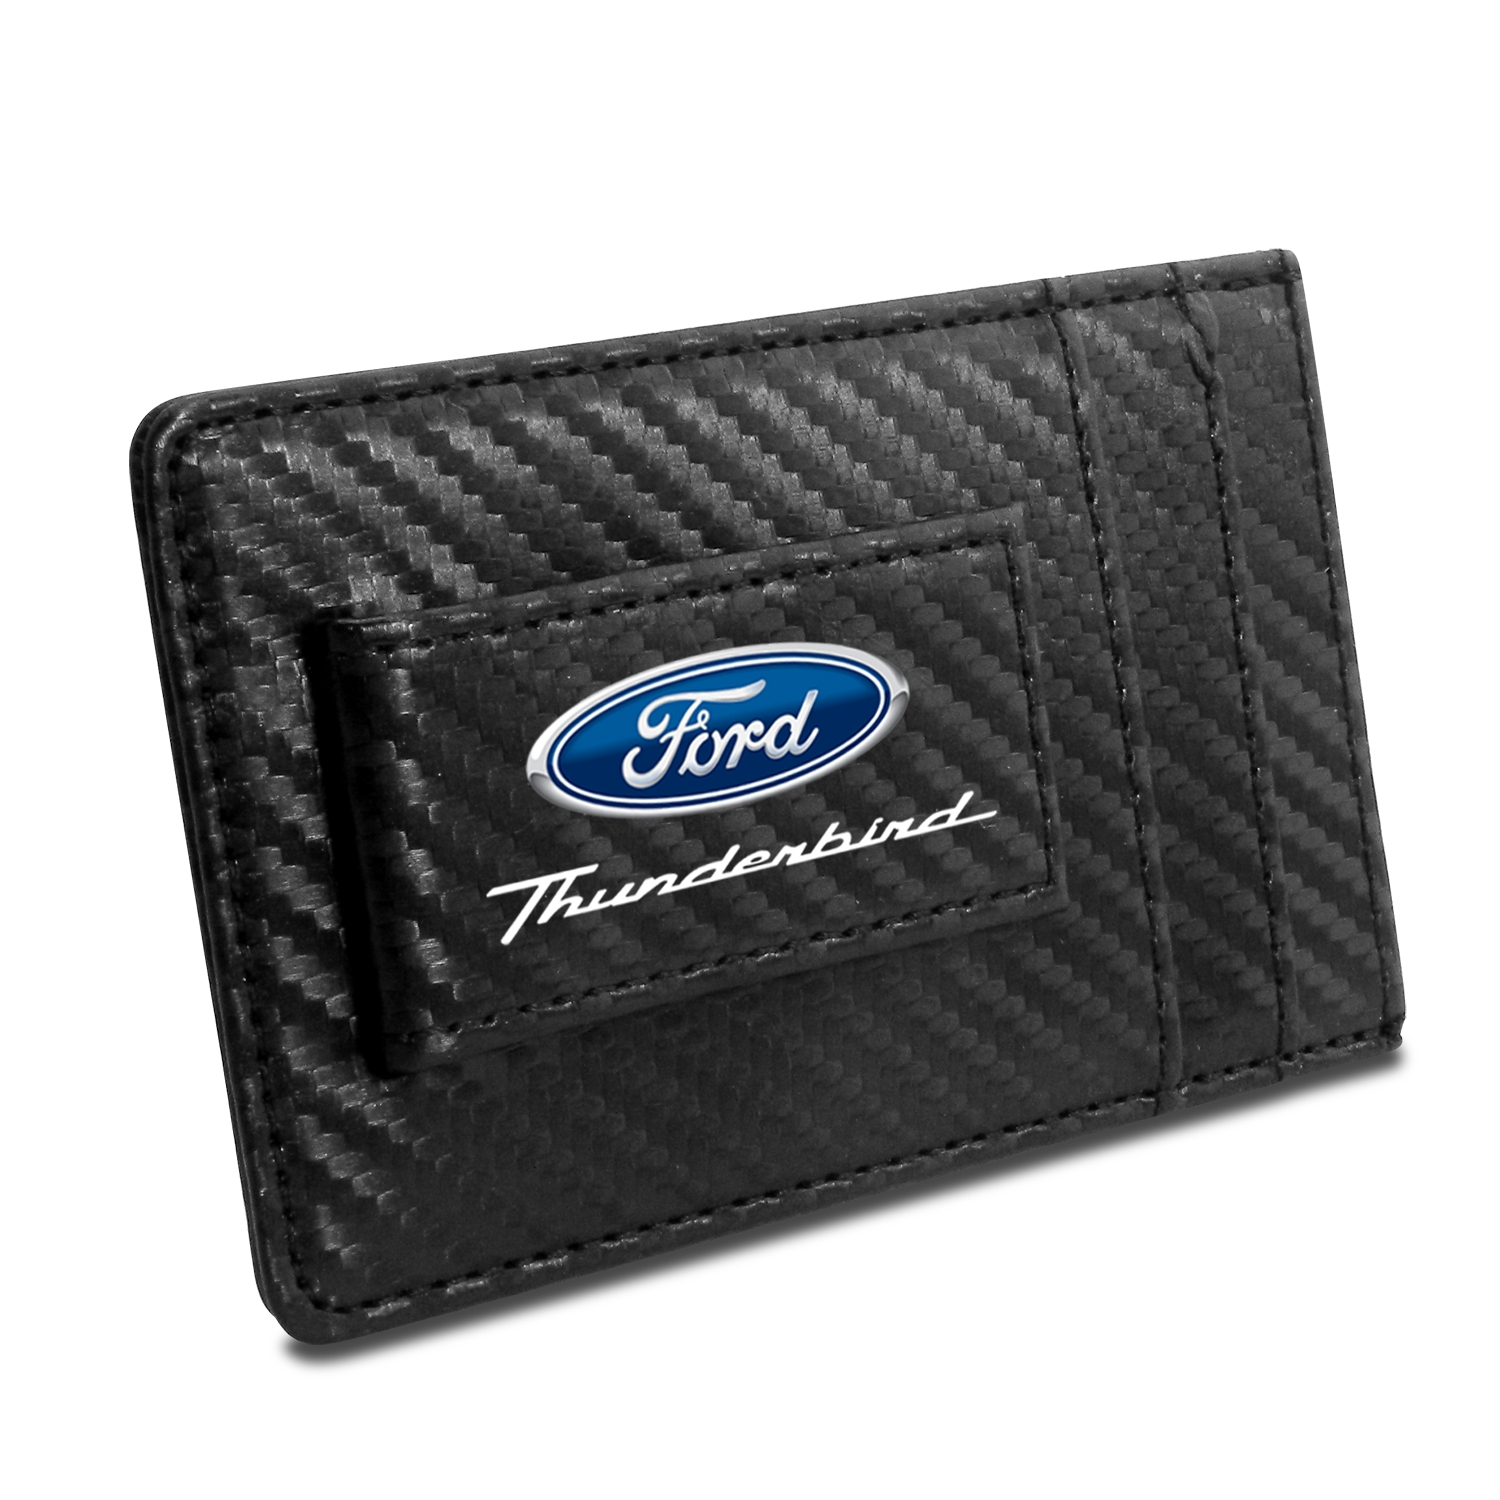 Ford Thunderbird Black Carbon Fiber RFID Card Holder Wallet